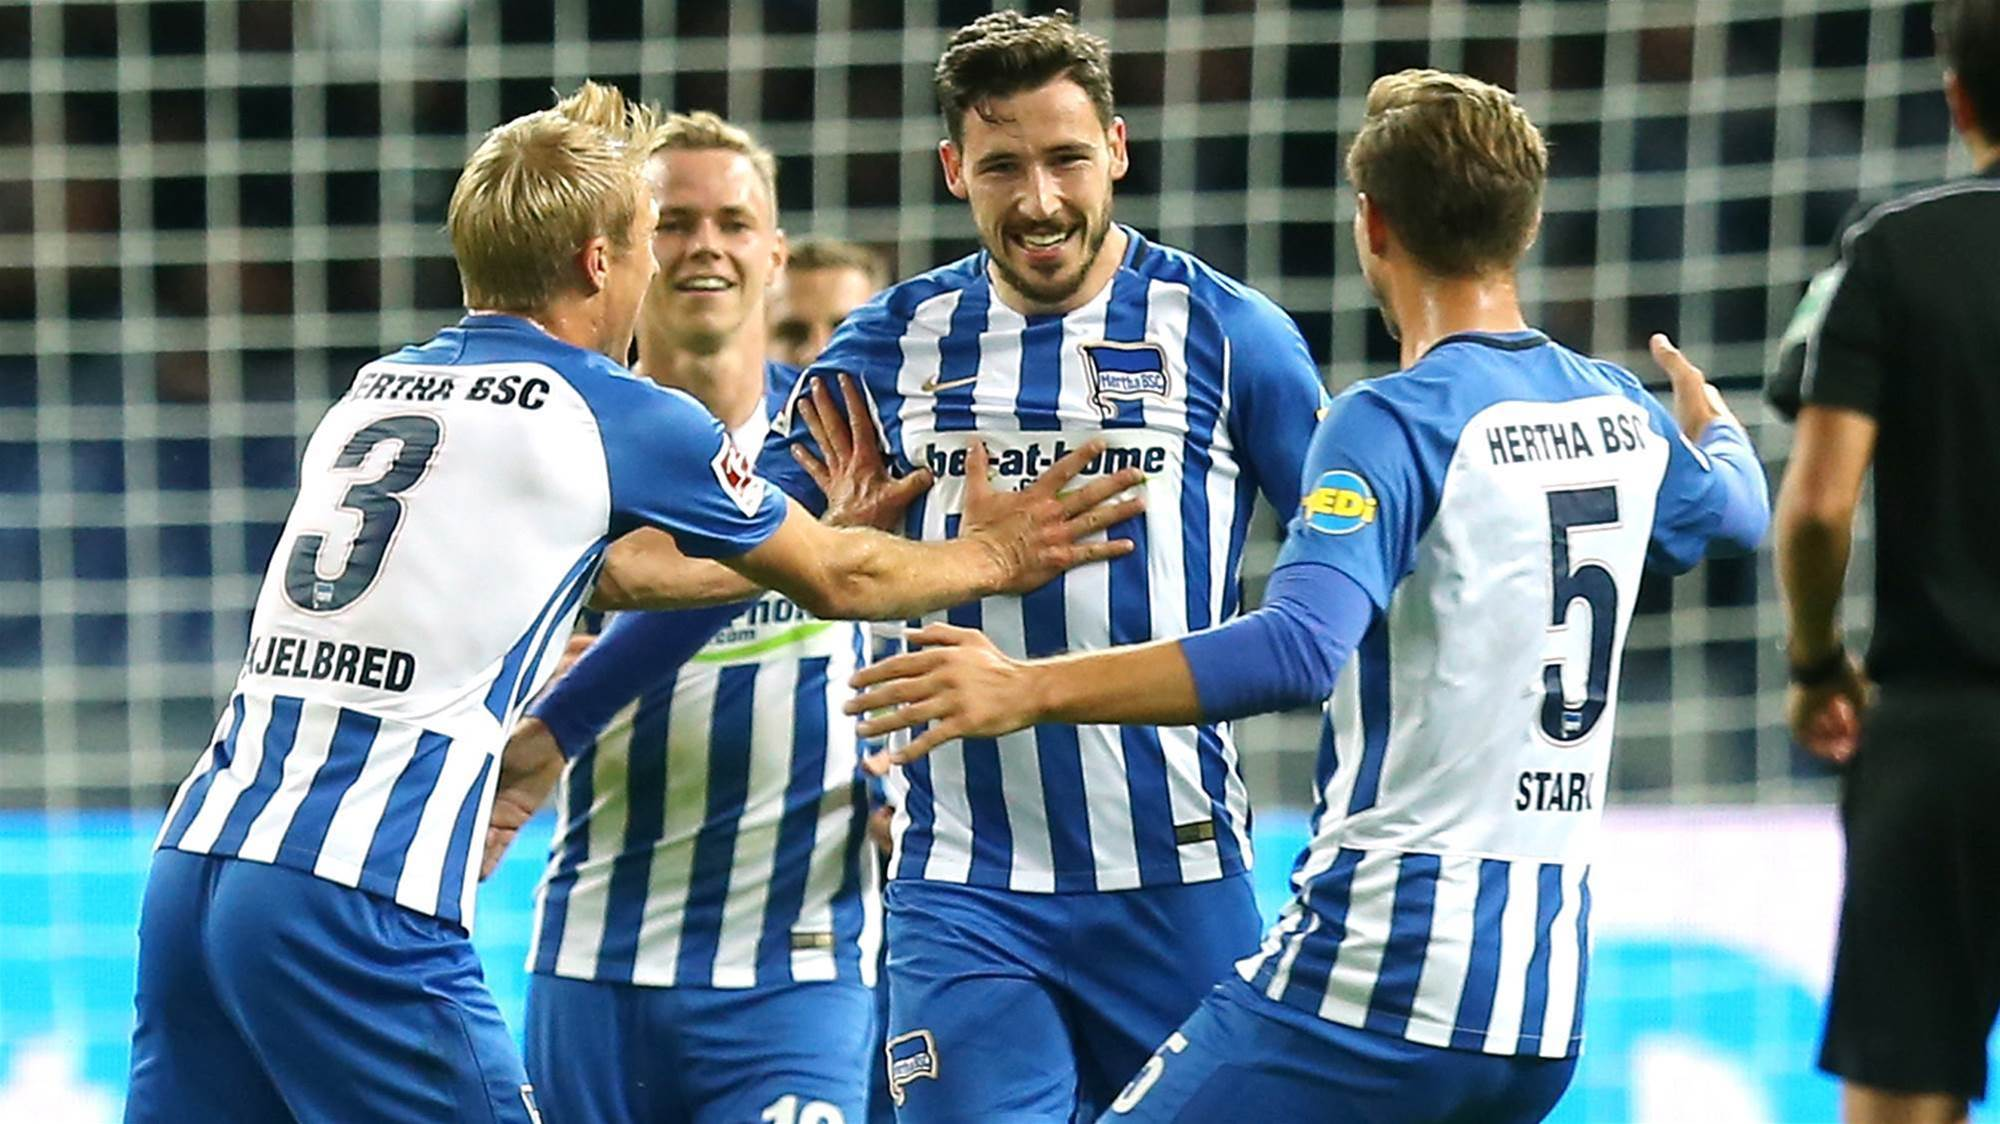 Leckie scores and stars in Hertha win